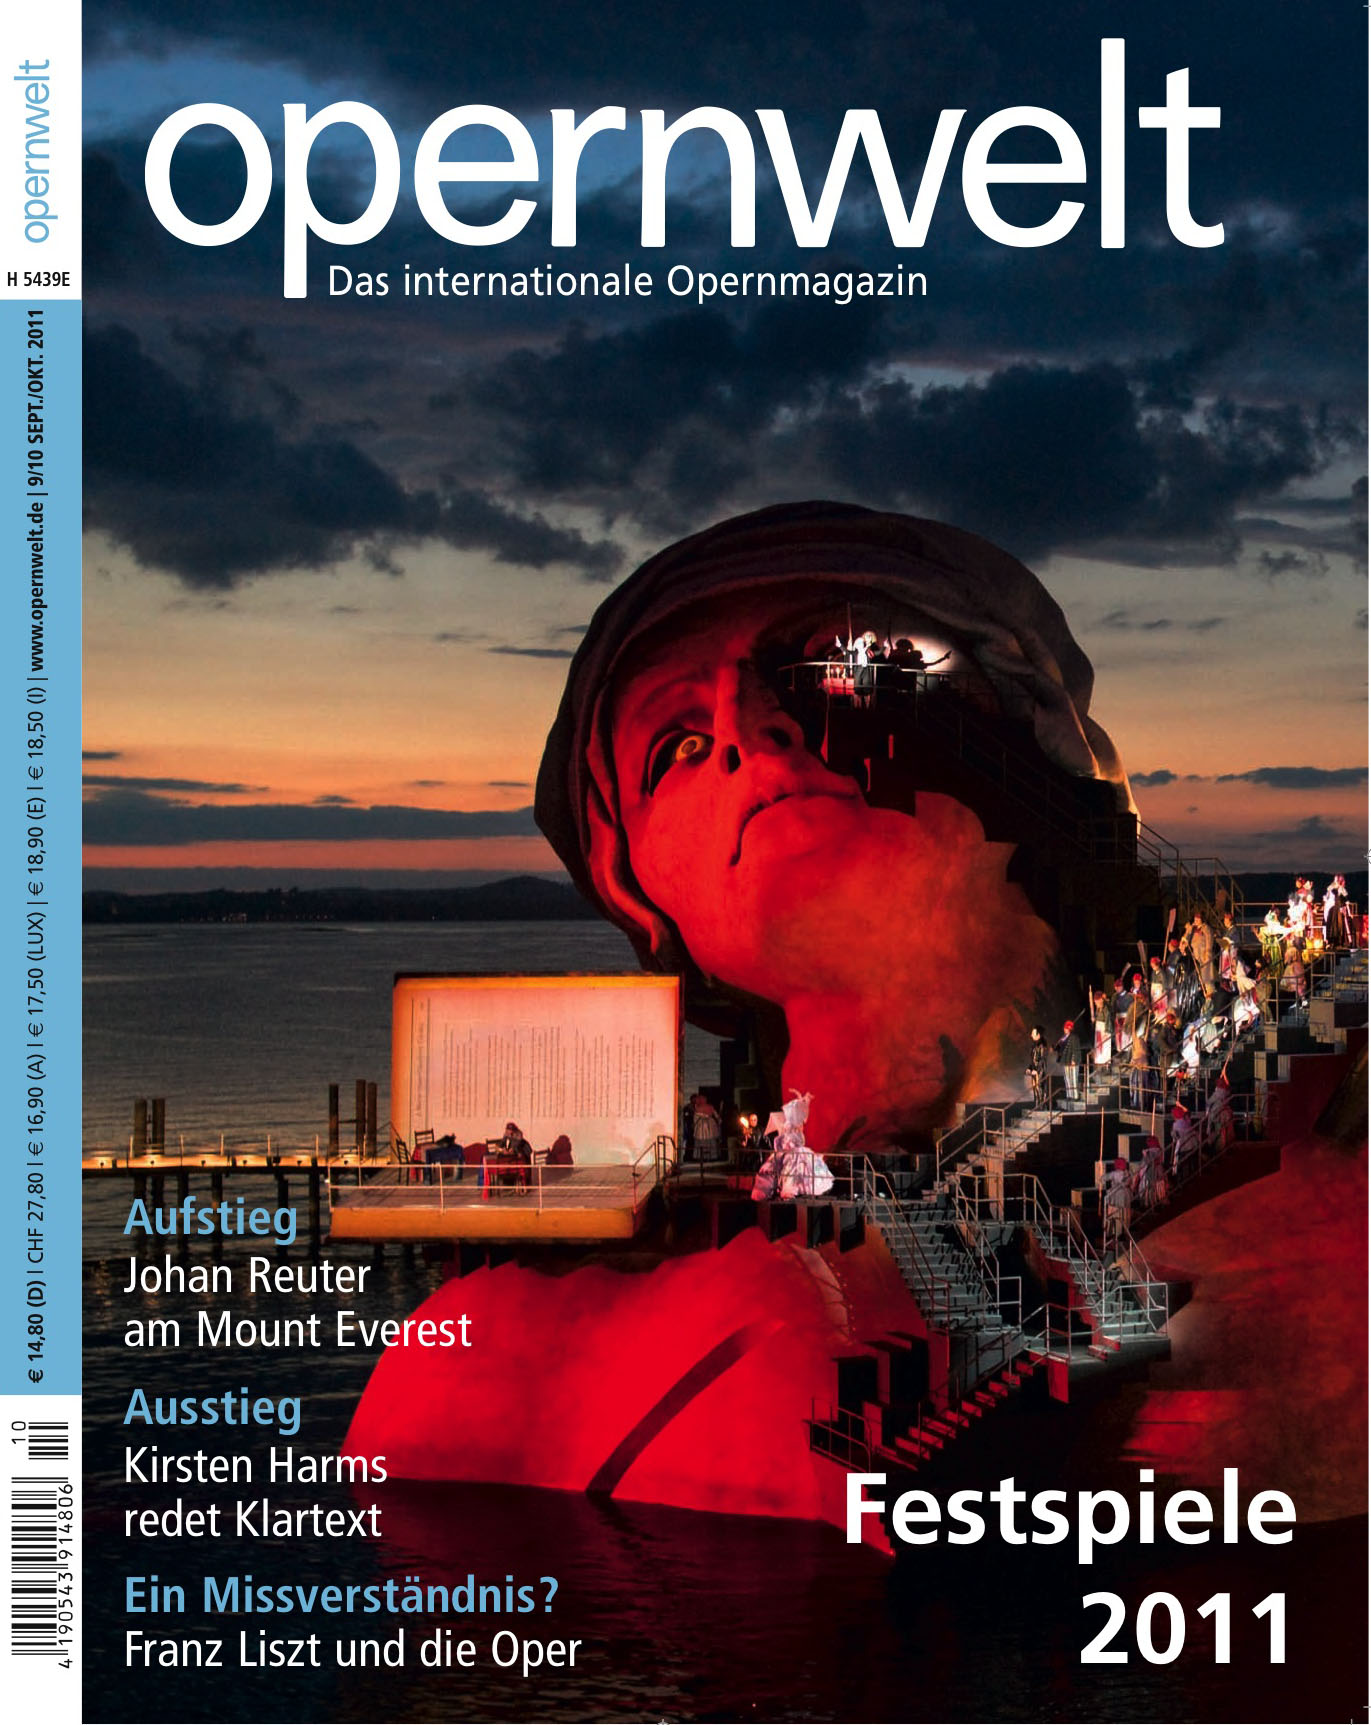 Opernwelt September/Oktober (9/10/2011)